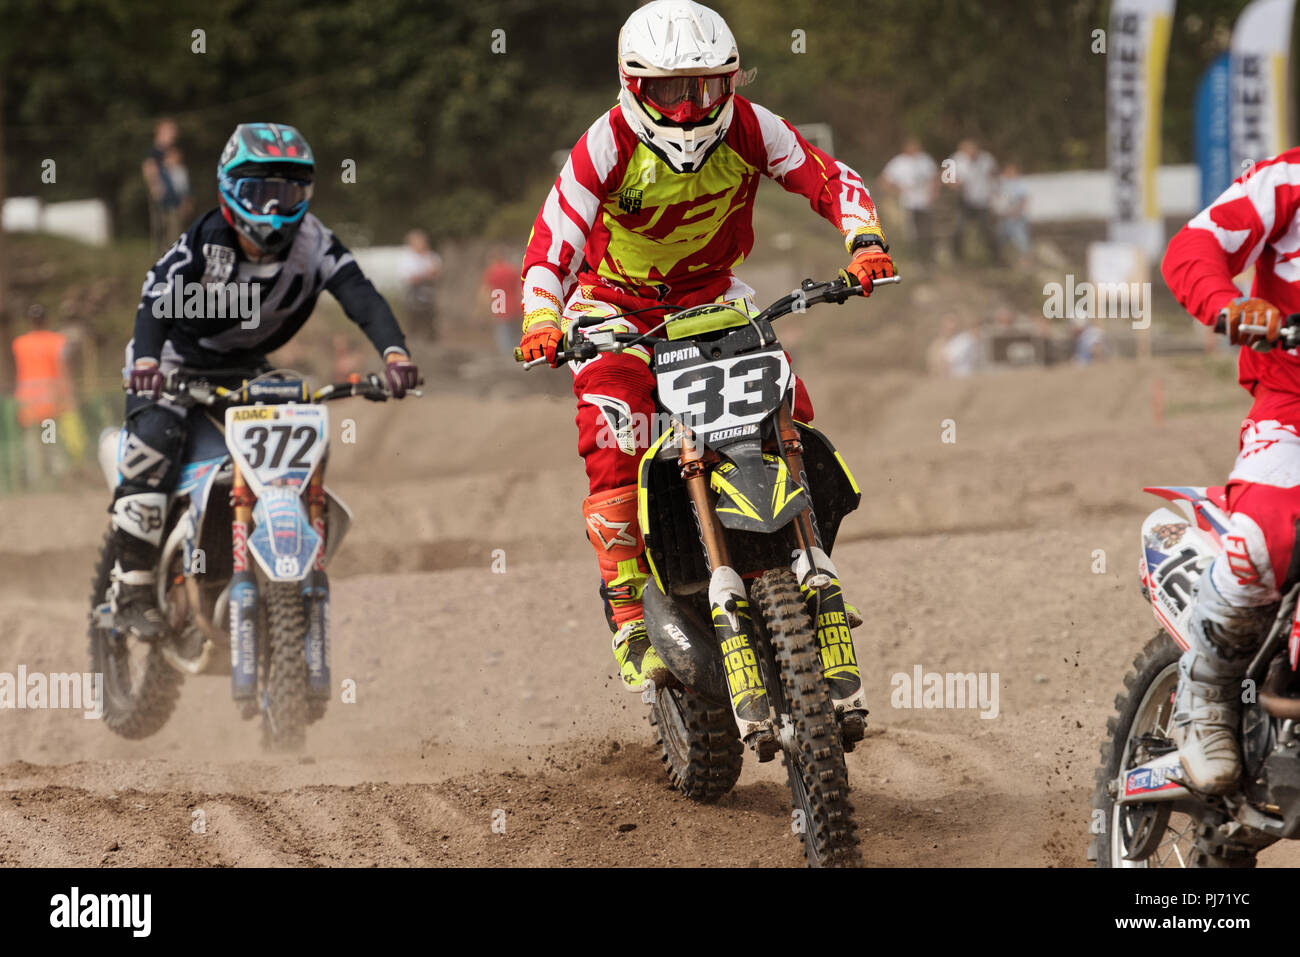 St. Petersburg, Russia - September 2, 2018: Athletes compete in third stage of Russian Supercross Championship. This stage is held on the motor racing Stock Photo